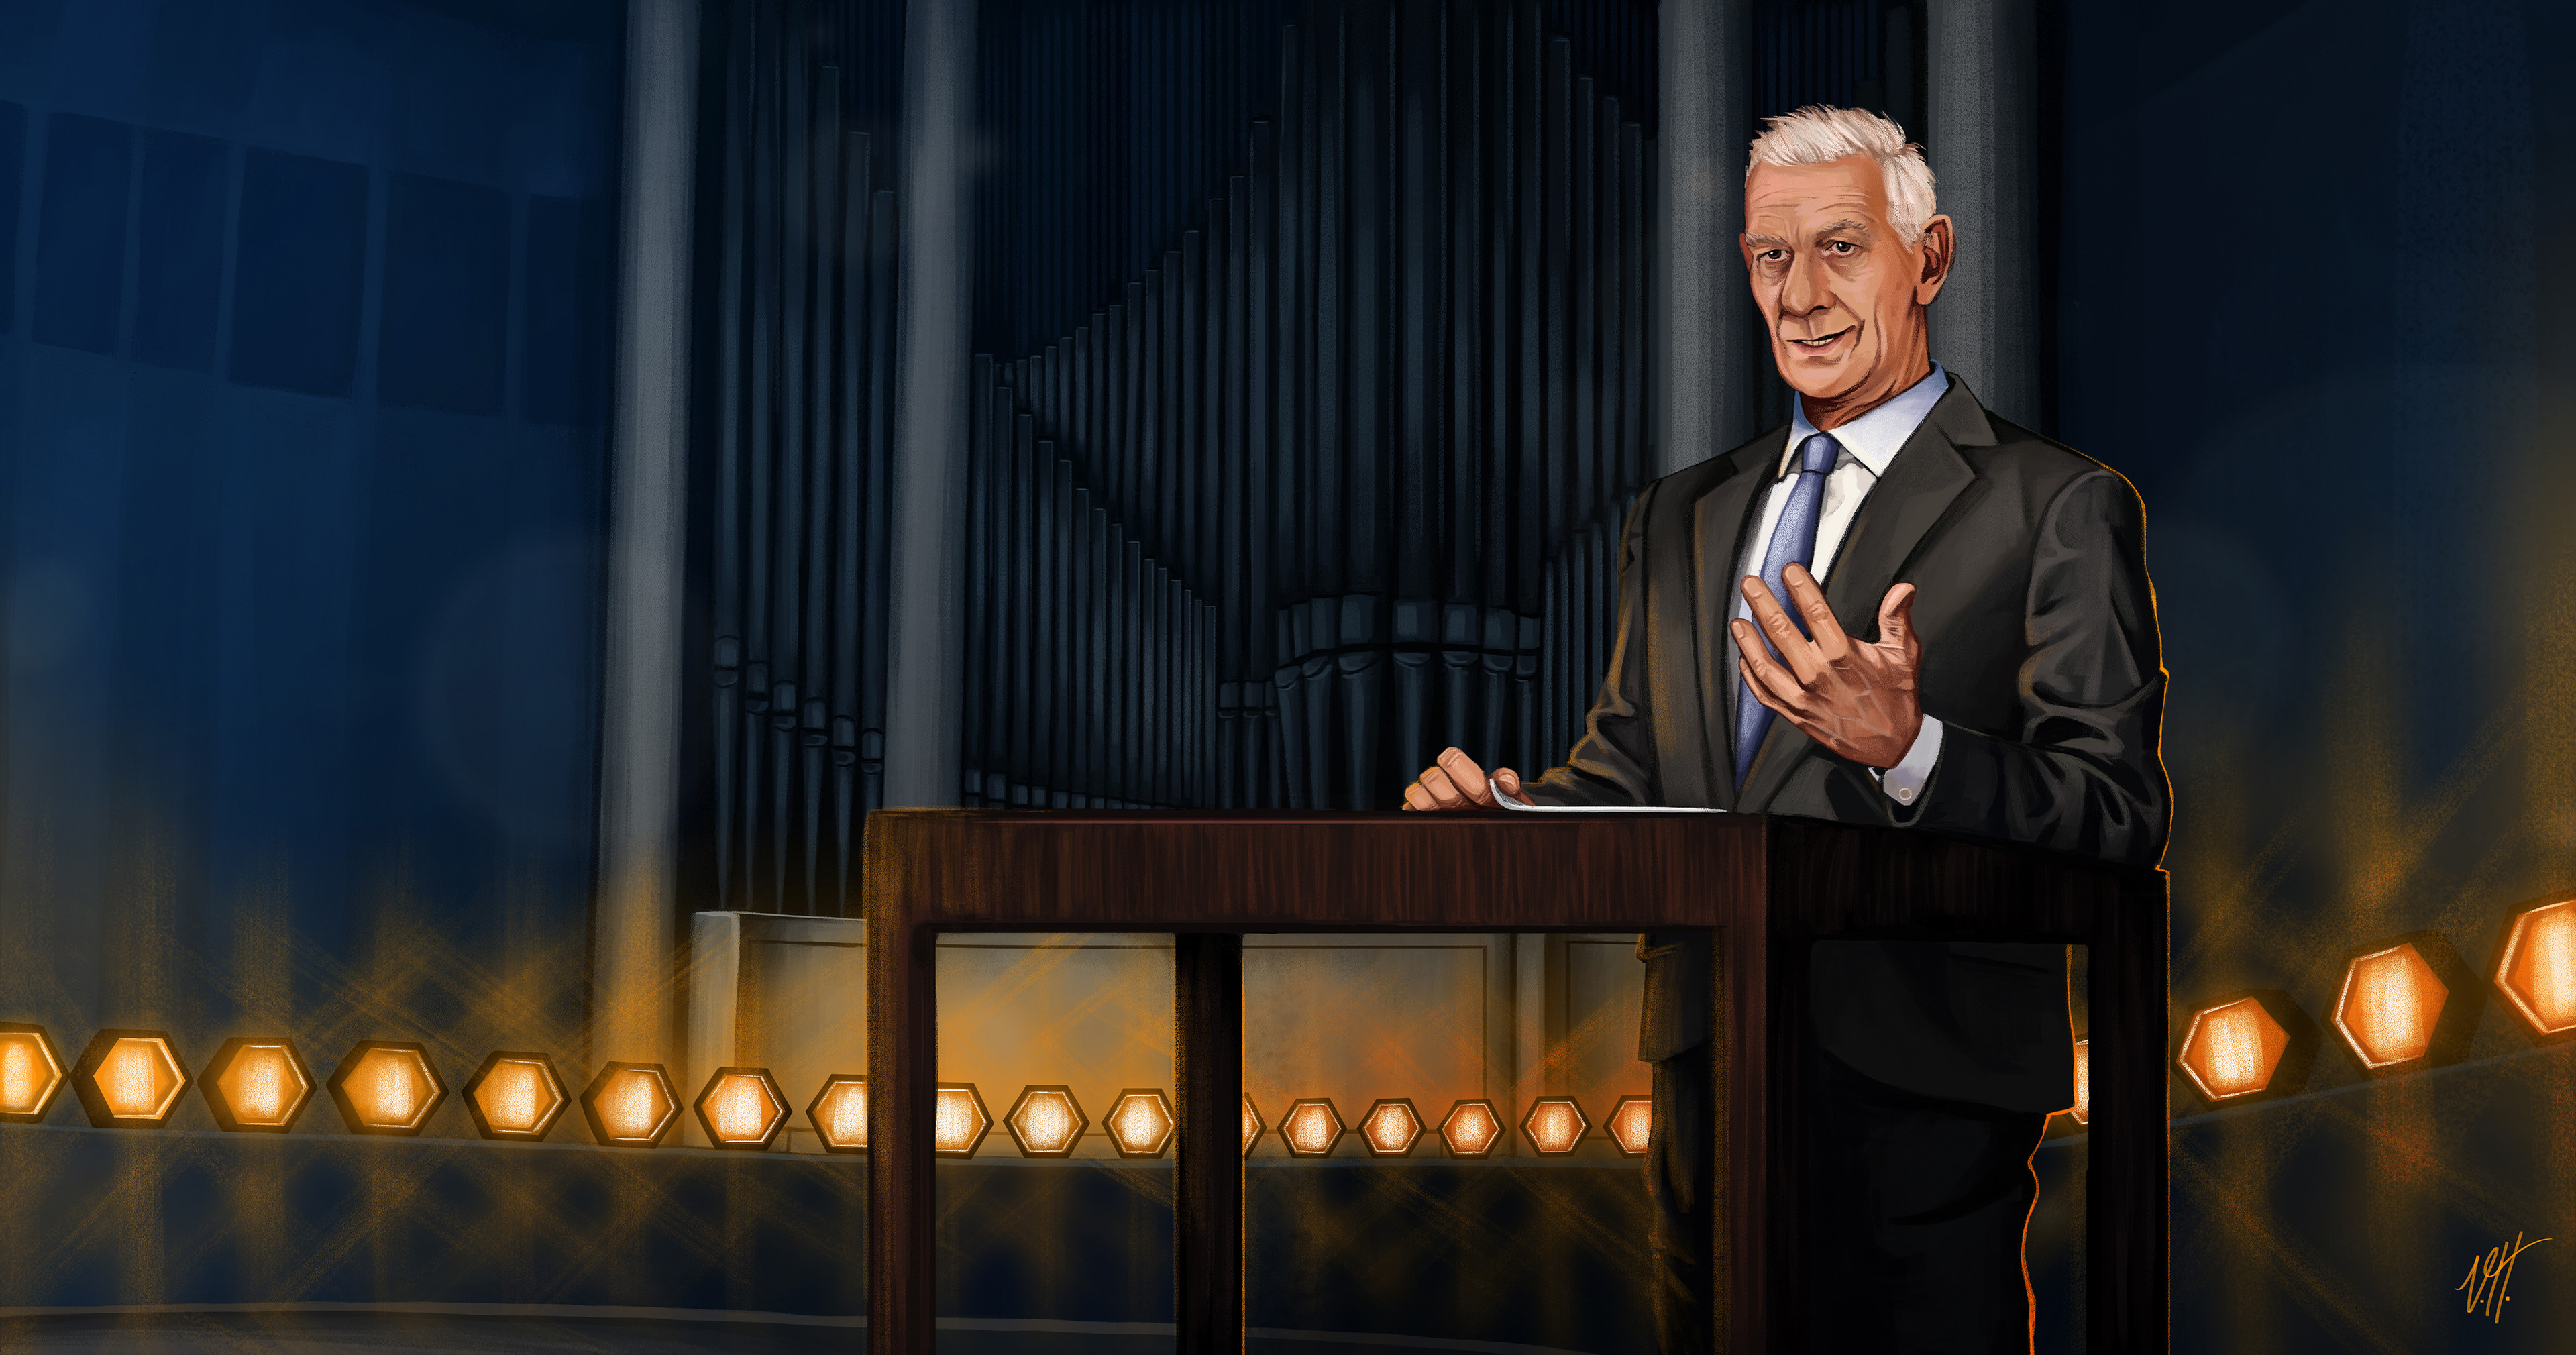 The moderator is giving a talk in front of the organ on stage.